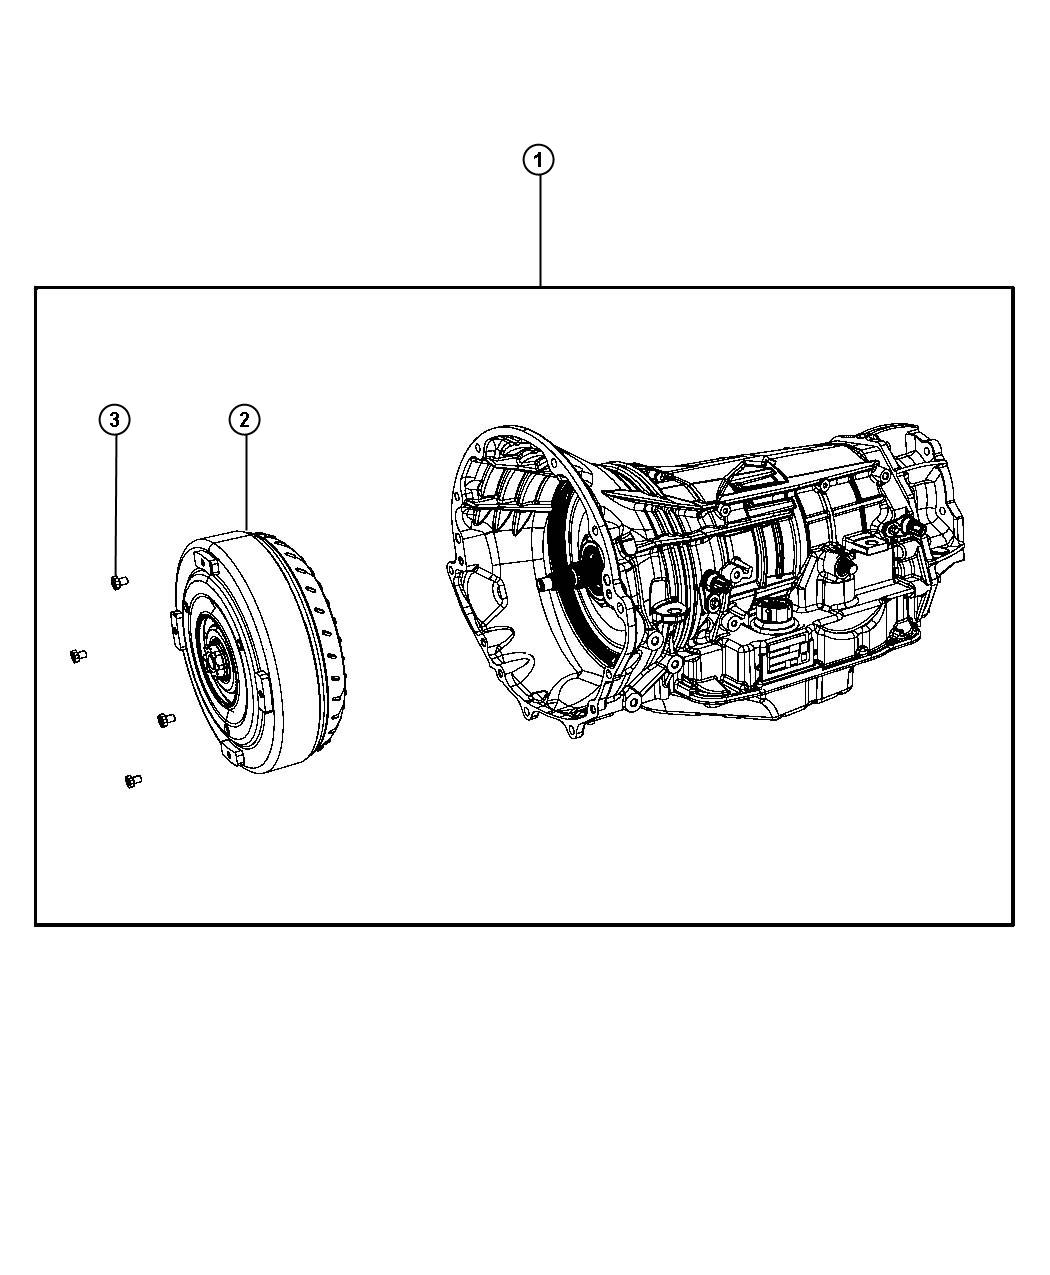 Dodge Durango Transmission package. With torque converter